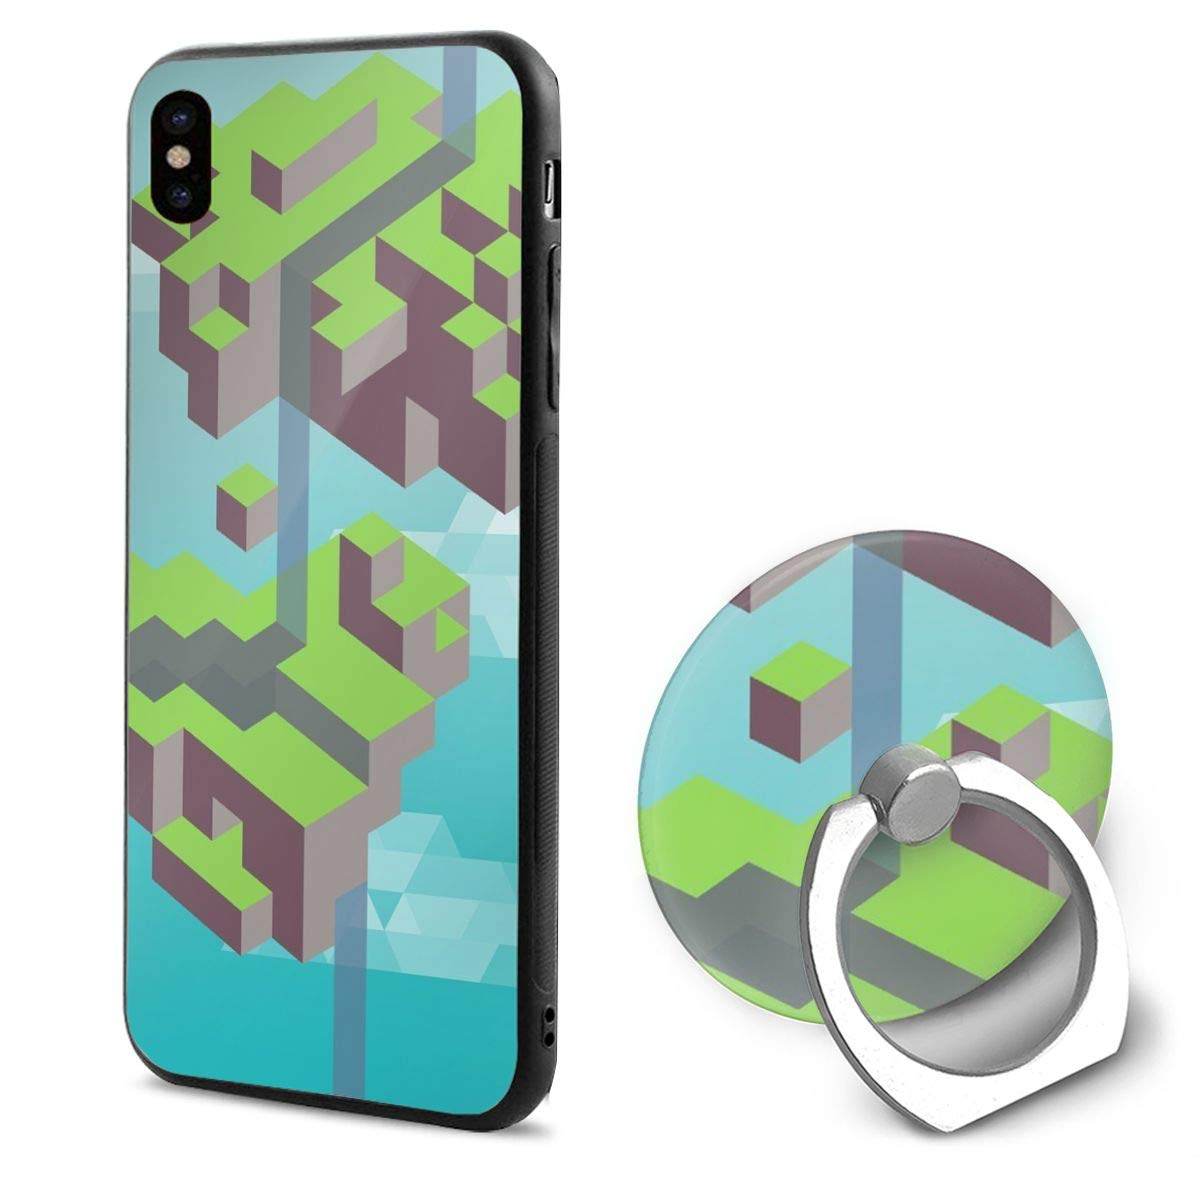 IPhone X Case Geometry Pattern With Ring Holder 360 Degree Rotating Stand Grip Mounts Slim Soft Protective Cover